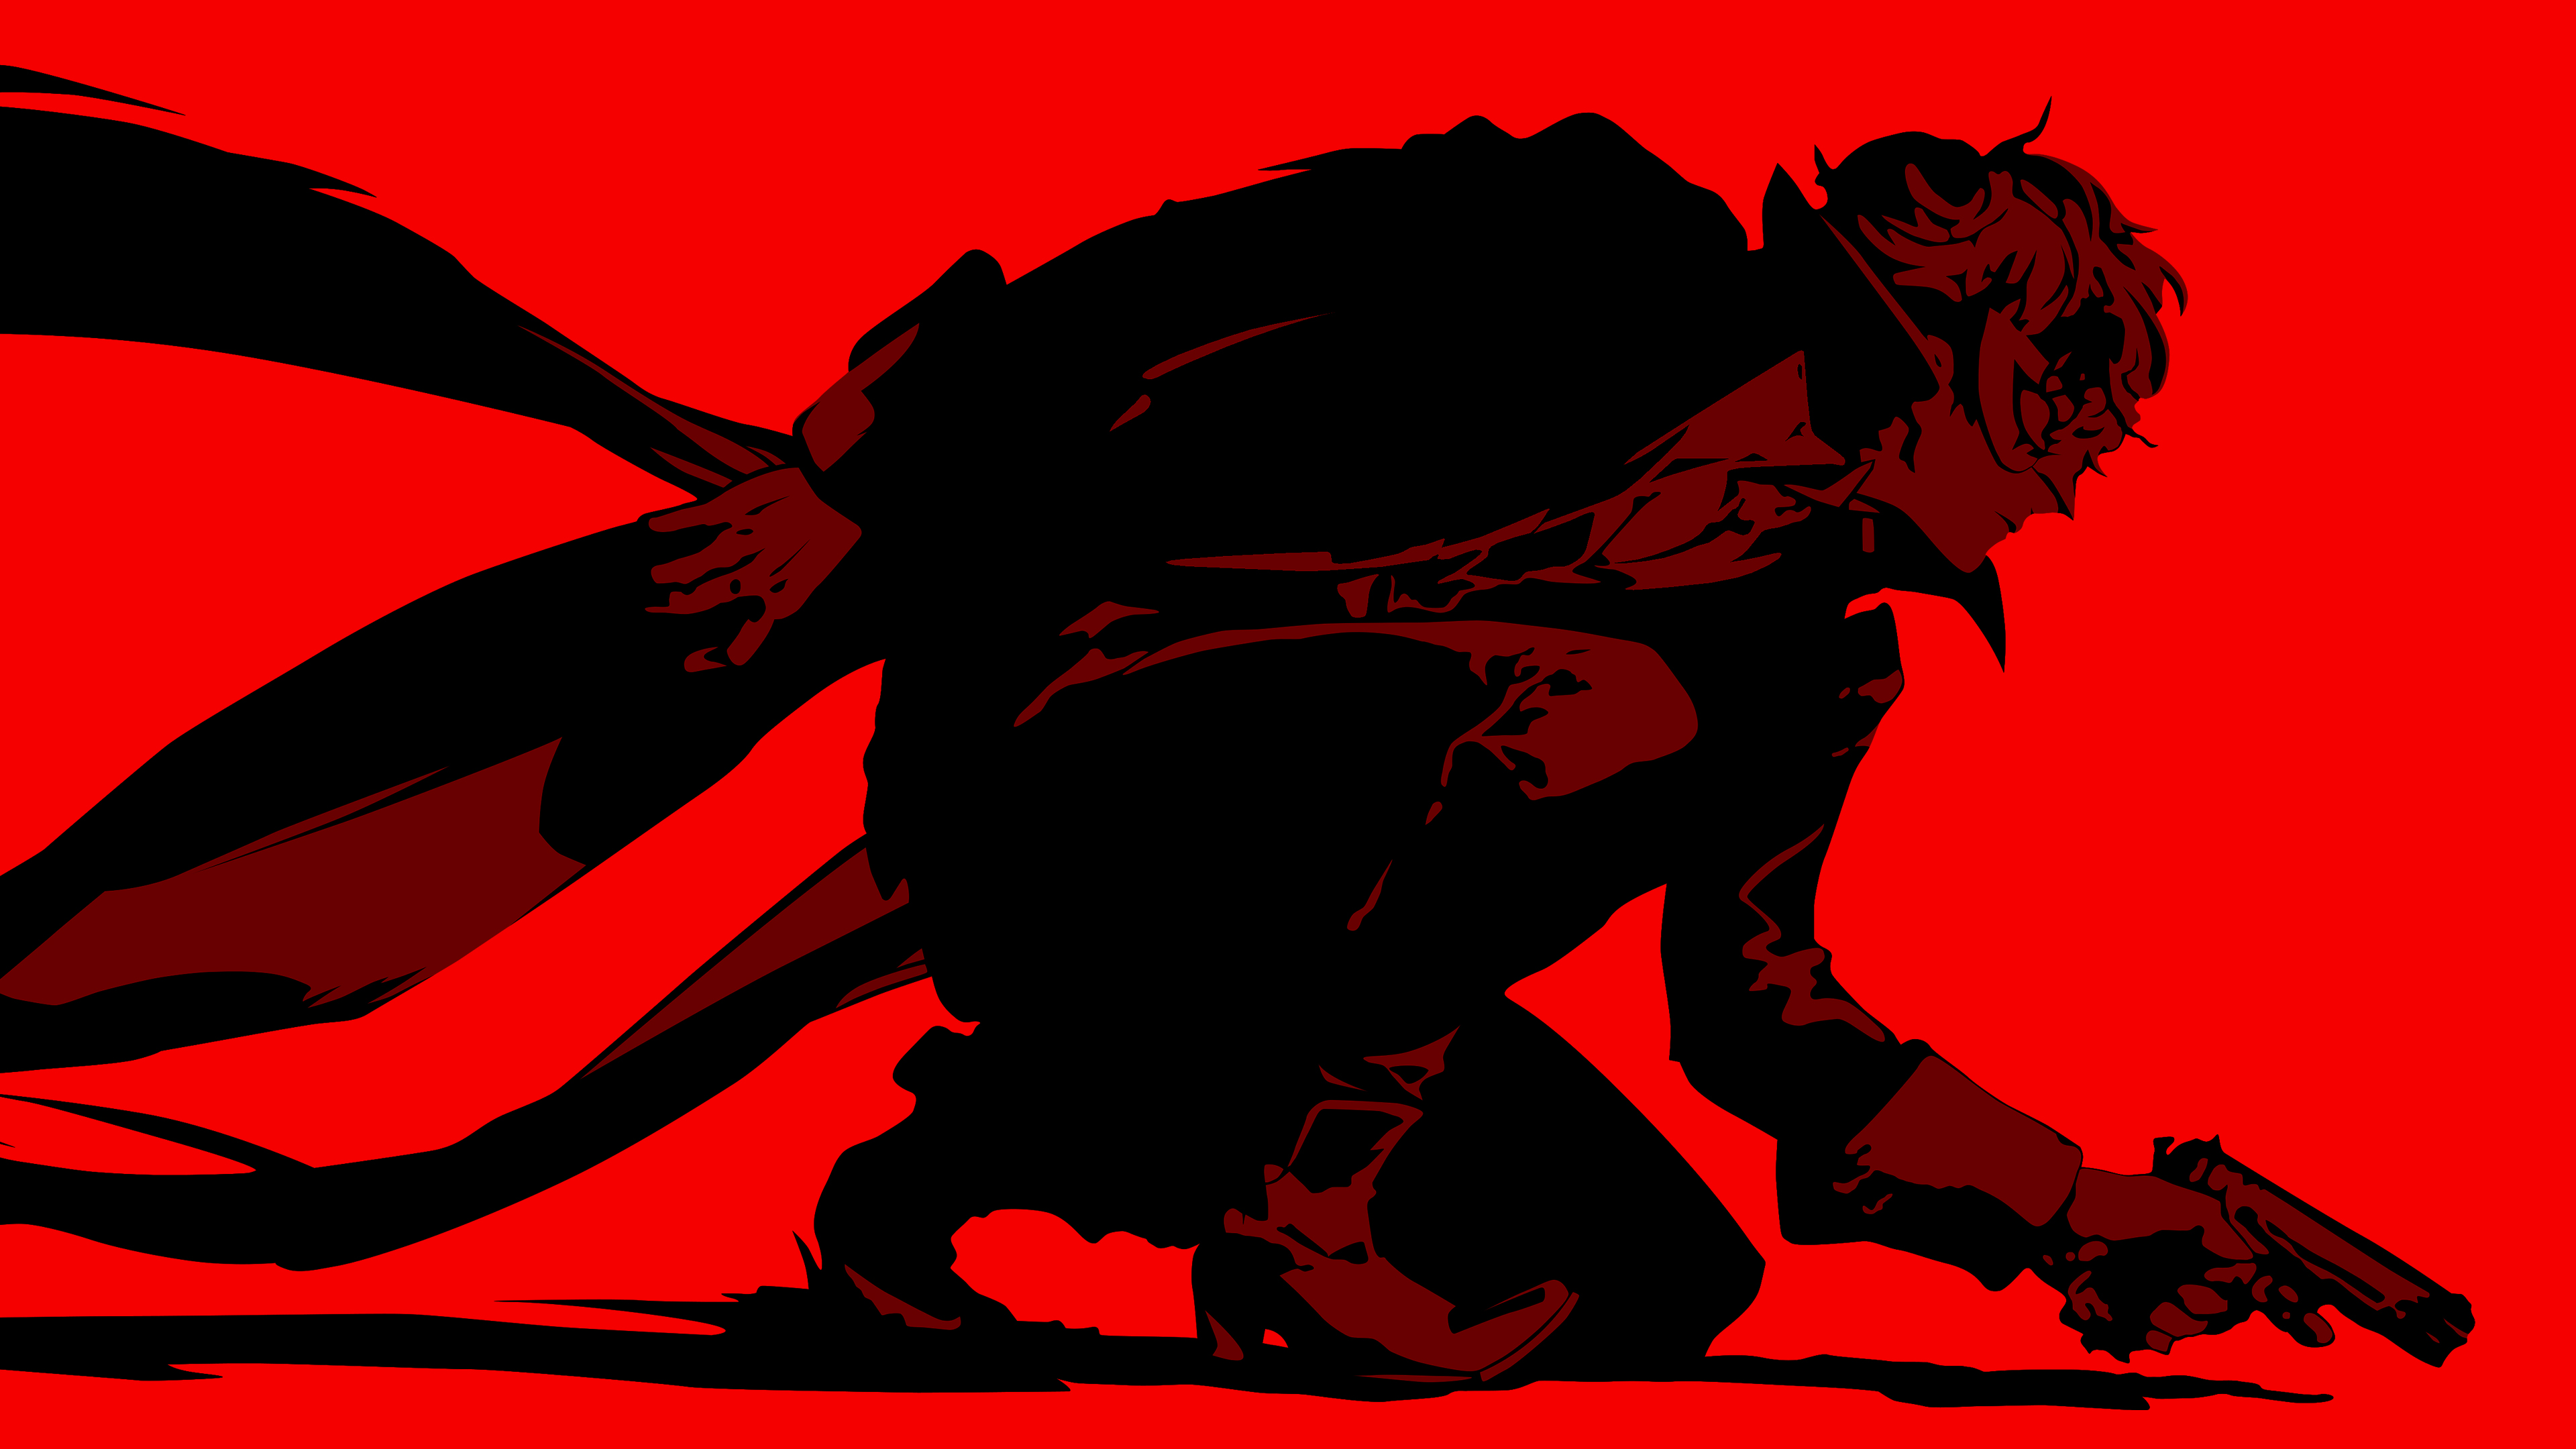 Iphone X Full Wallpaper Size Super Persona 5 Wallpaper Full Hd Pictures